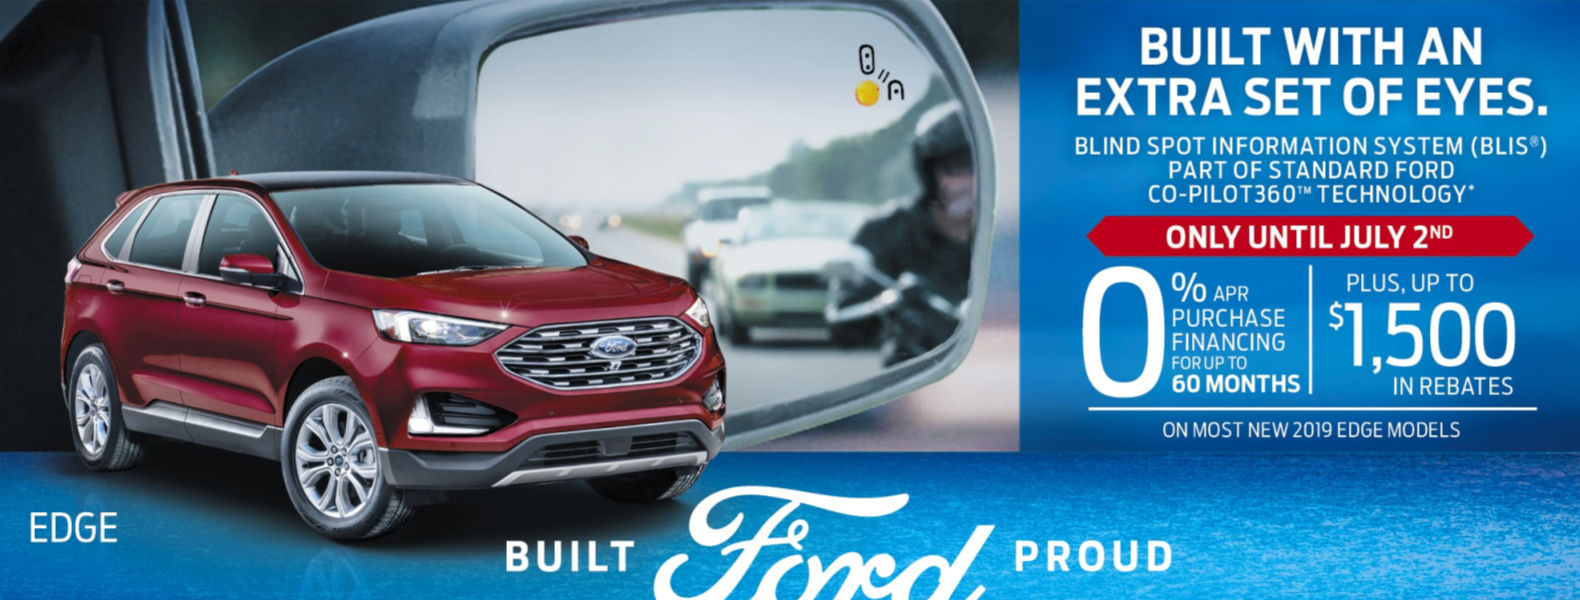 ford egde new smiths falls deals